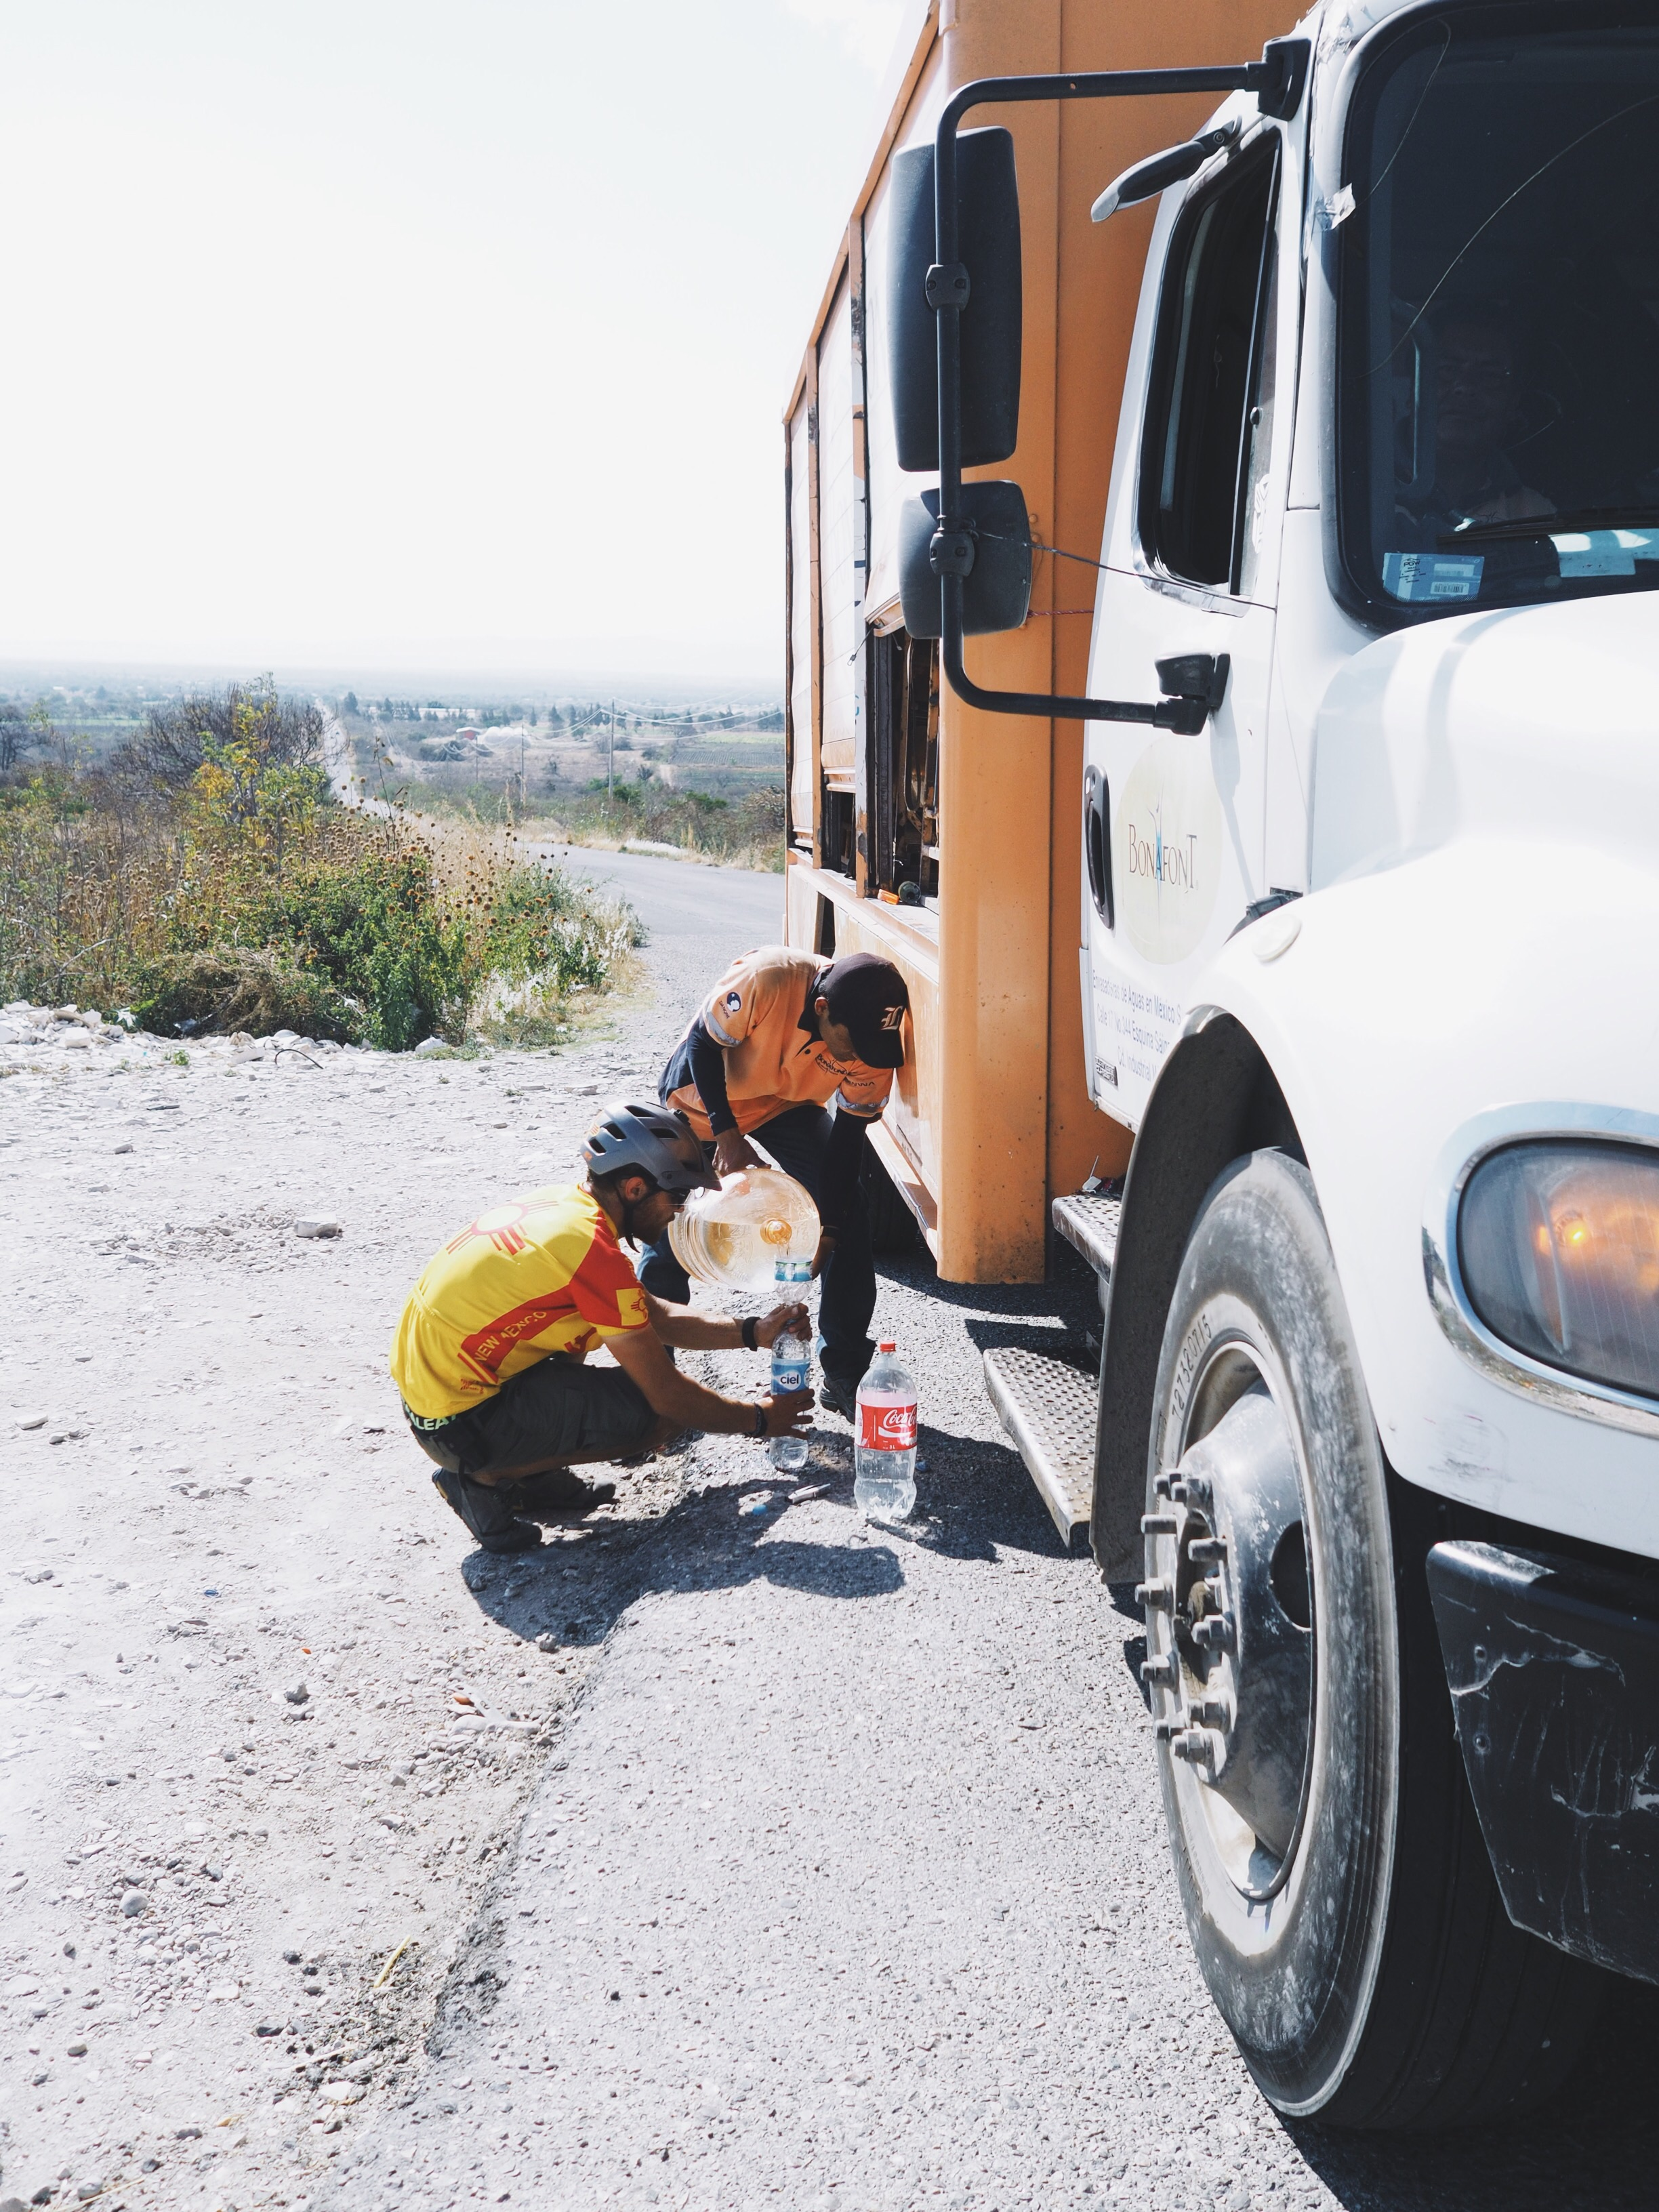 Filling up our bottles from a water truck!